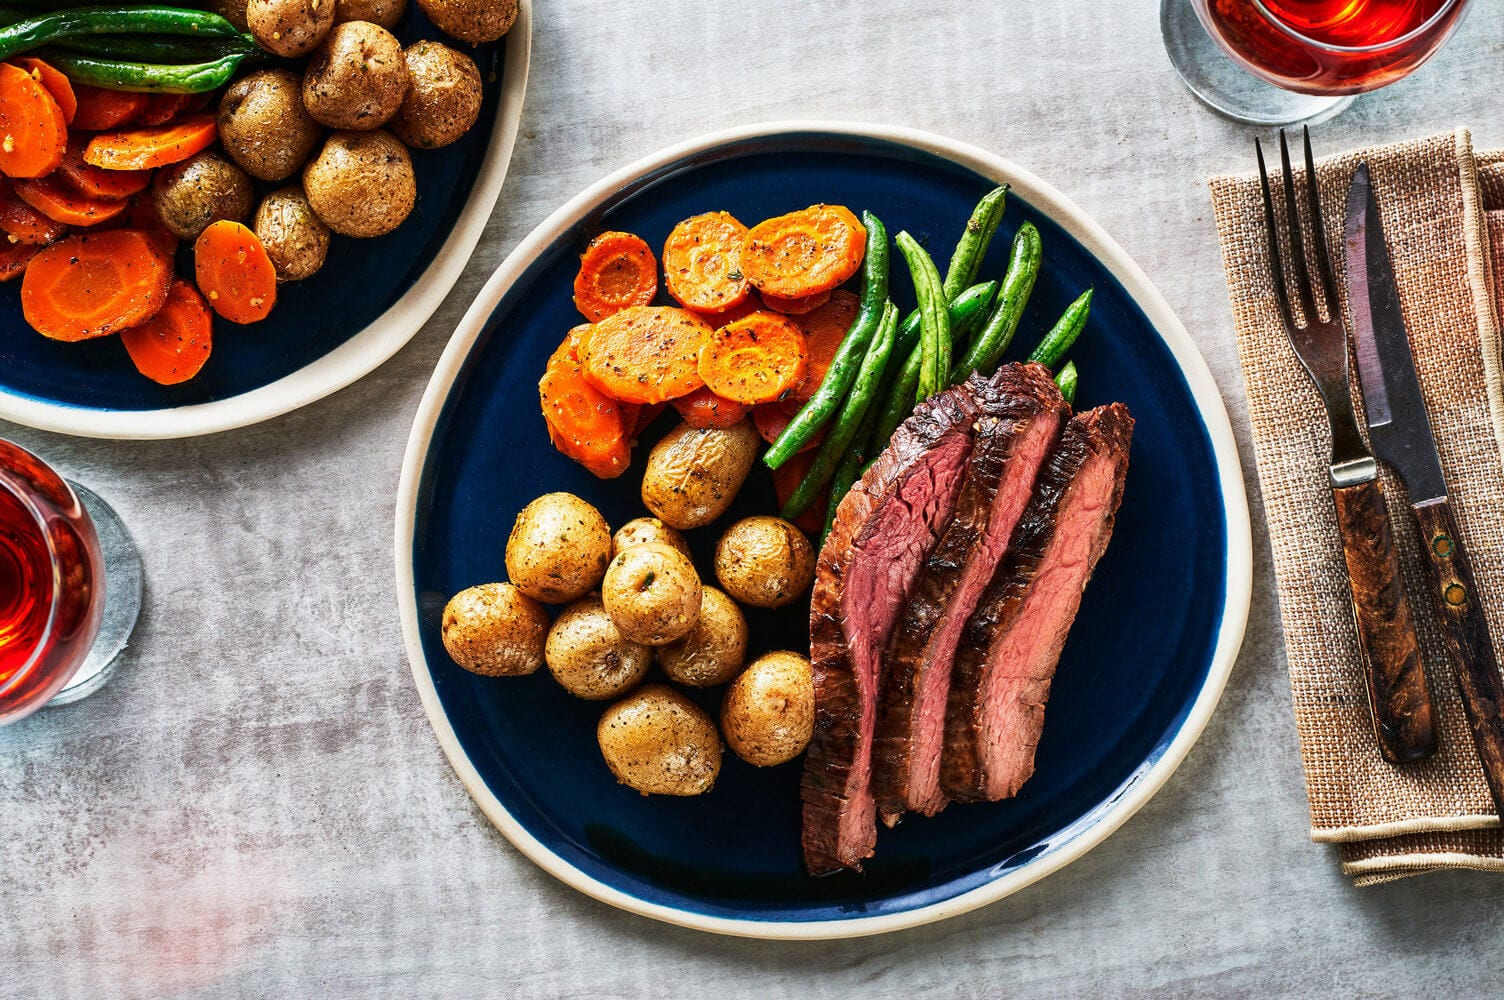 Onion and Chive Potatoes with Flank Steak